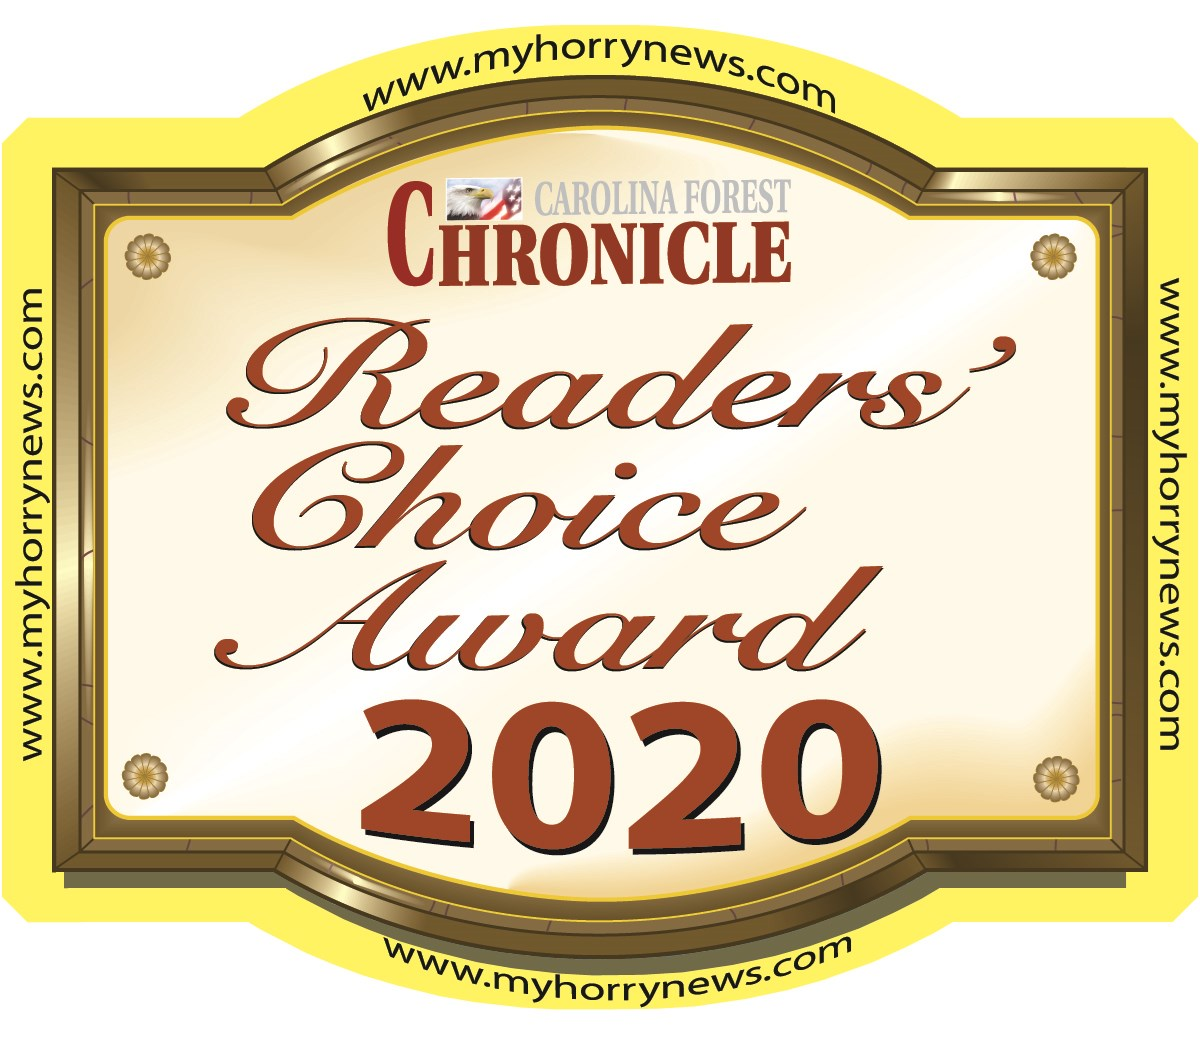 2020 Carolina Forest Chronicle Readers Choice